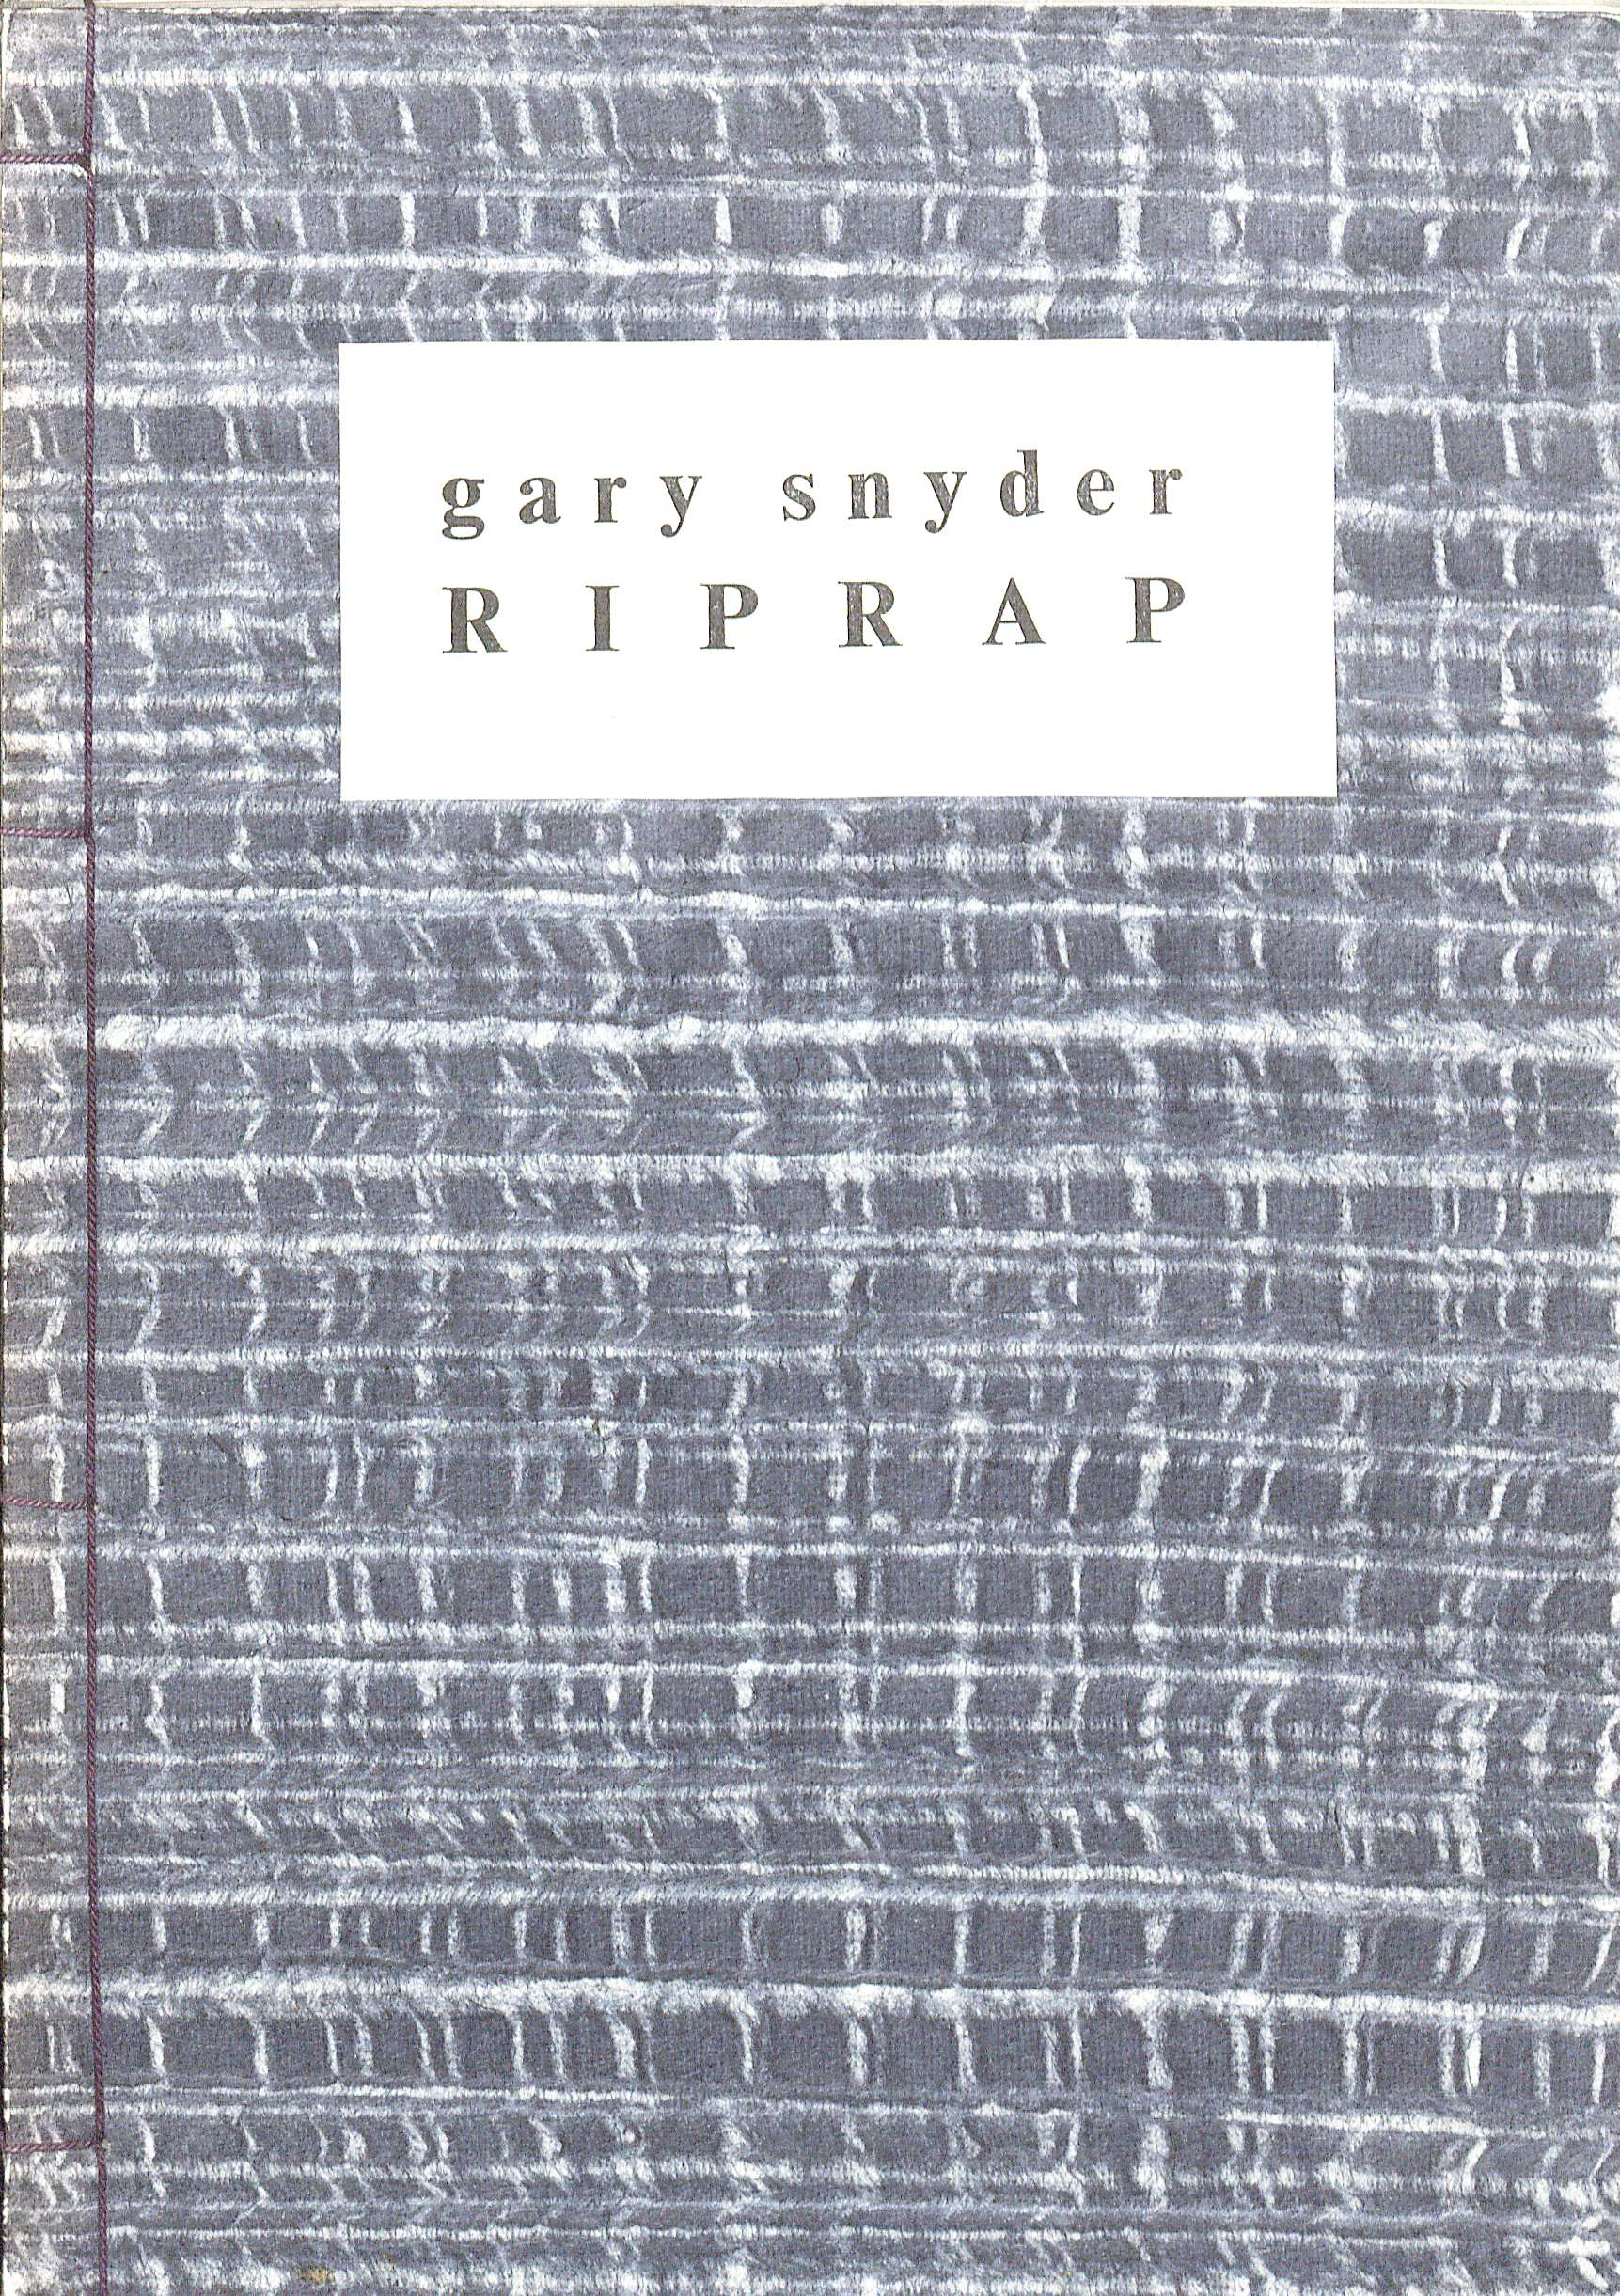 Cover of Gary Snyder's Riprap, 1959. (PS3569 .N88R49 1959. Image by Petrina Jackson).